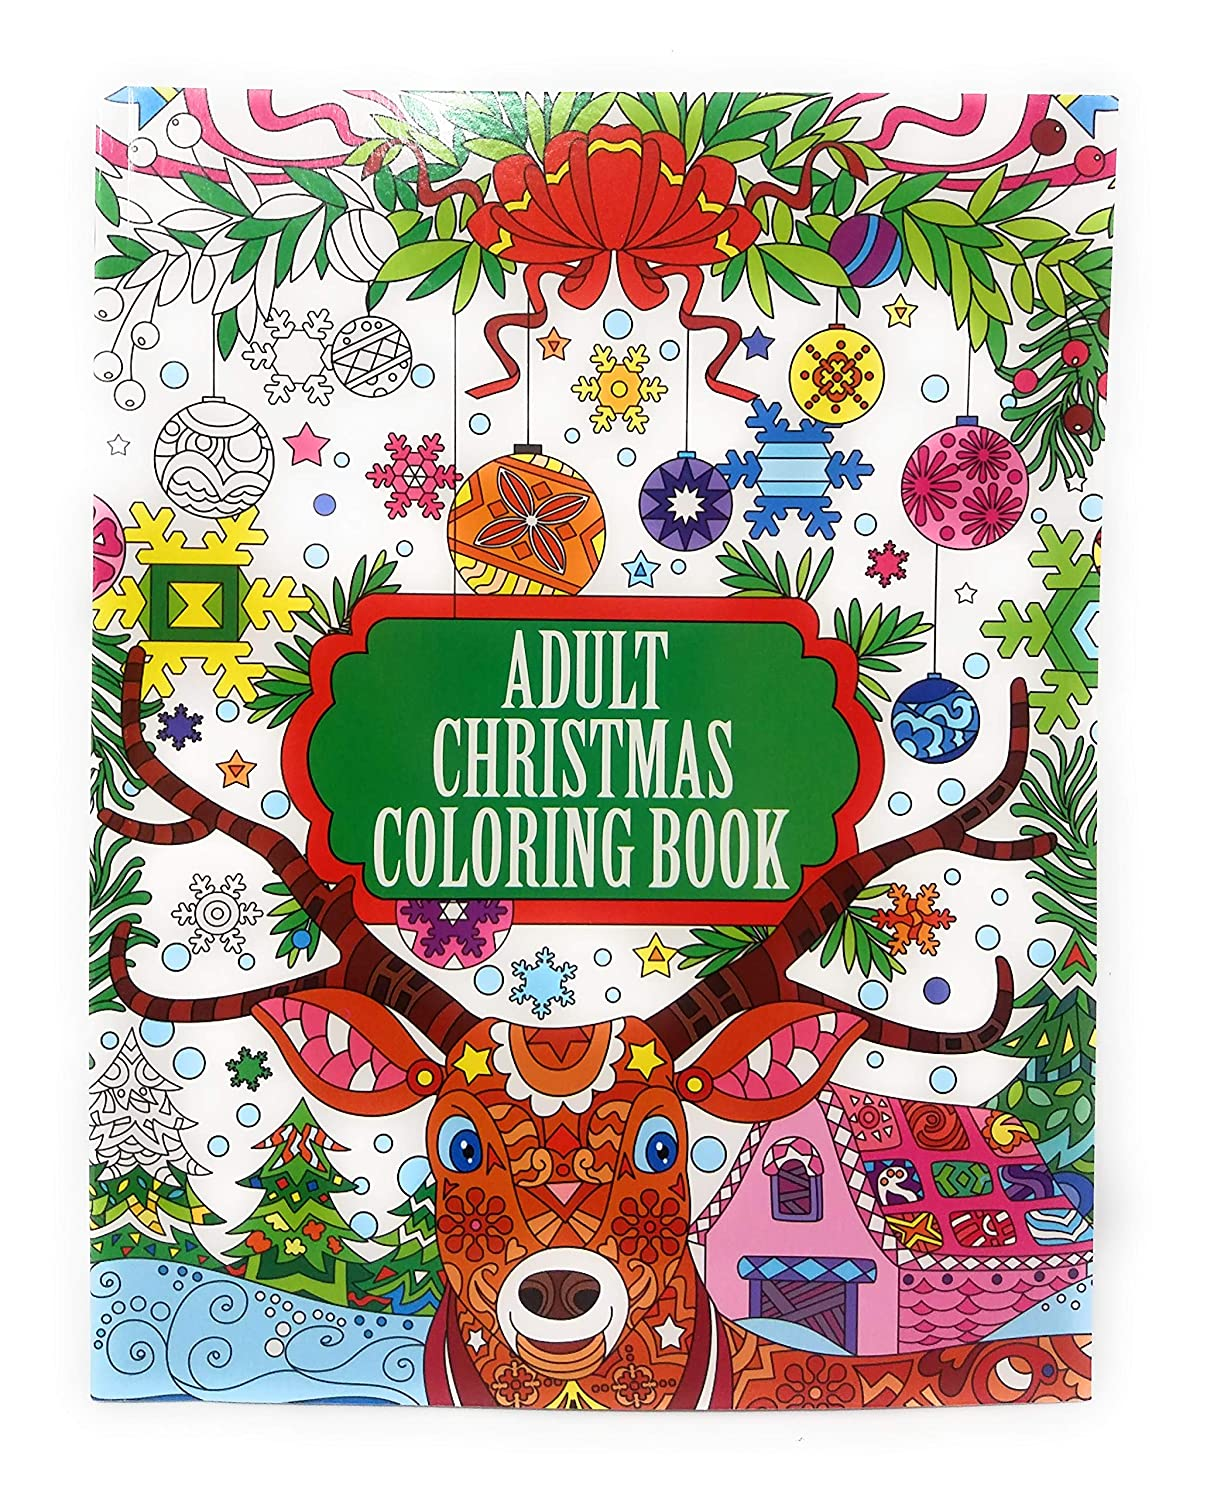 Adult Christmas Coloring Book